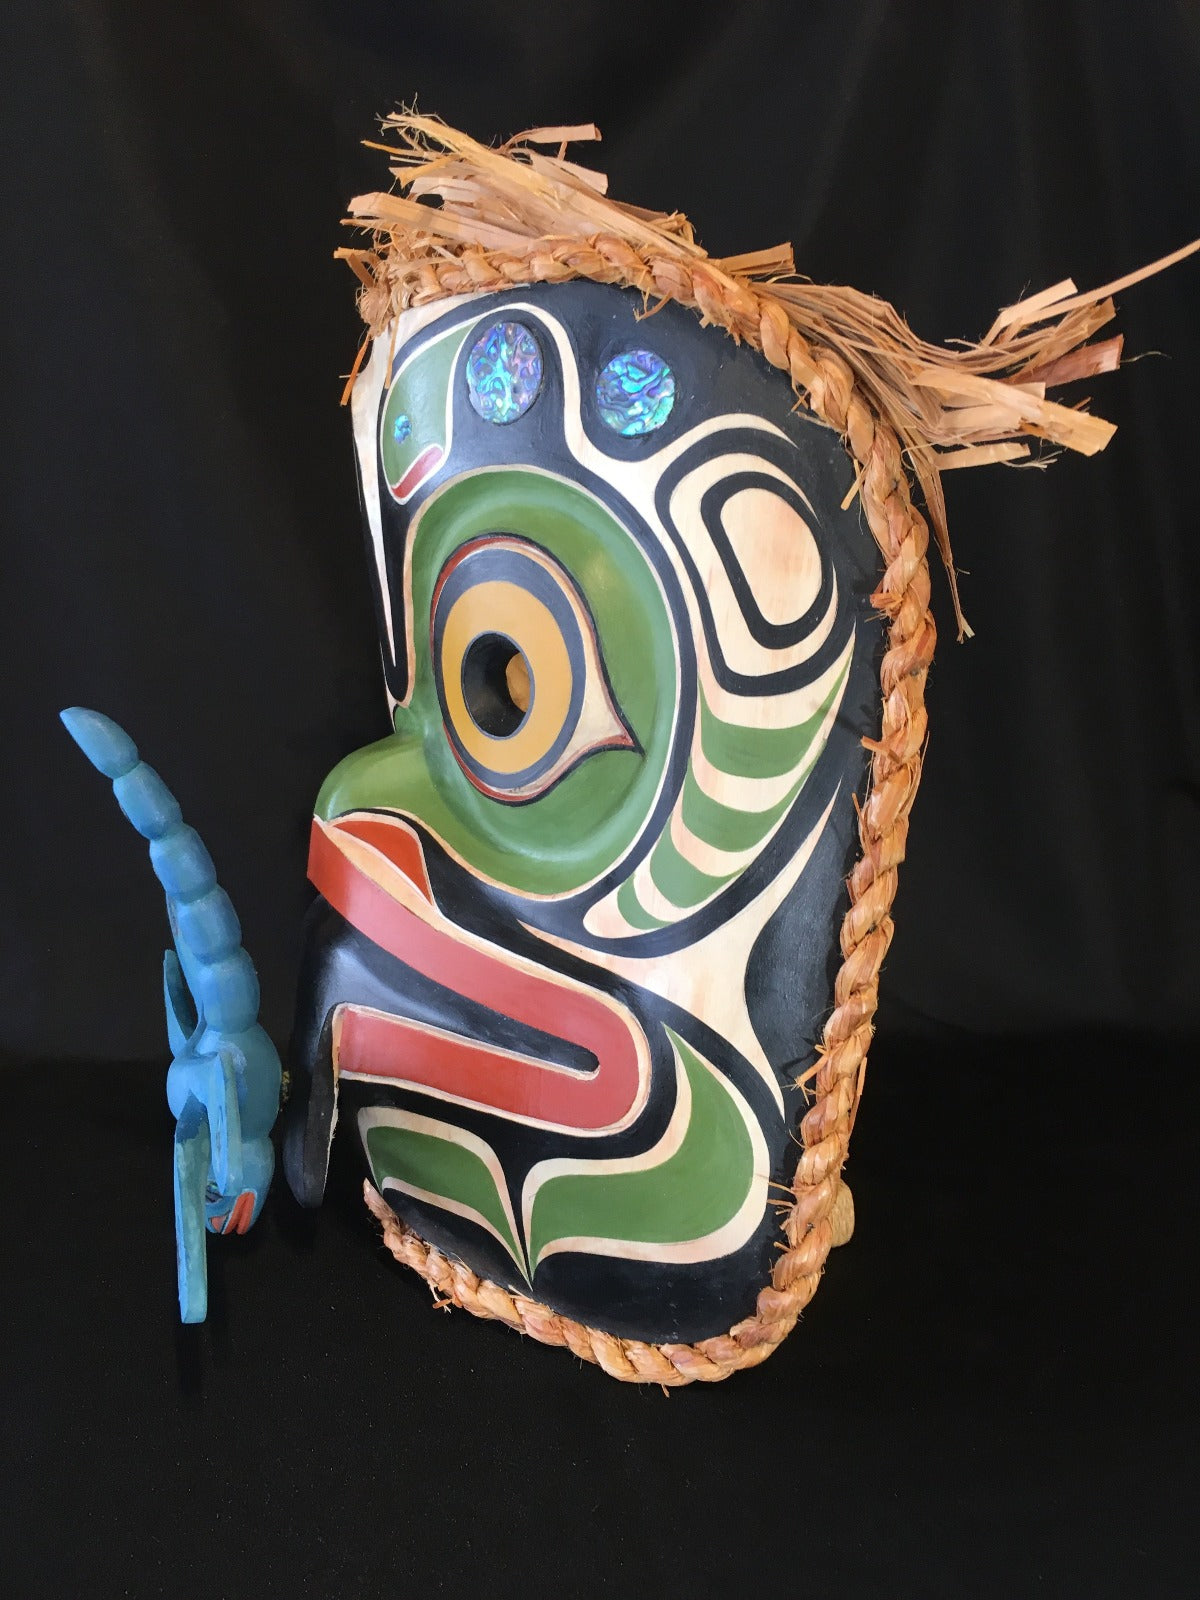 Alder Frog and Dragonfly Mask, by Ryan Morin, Pacific Coast Mask